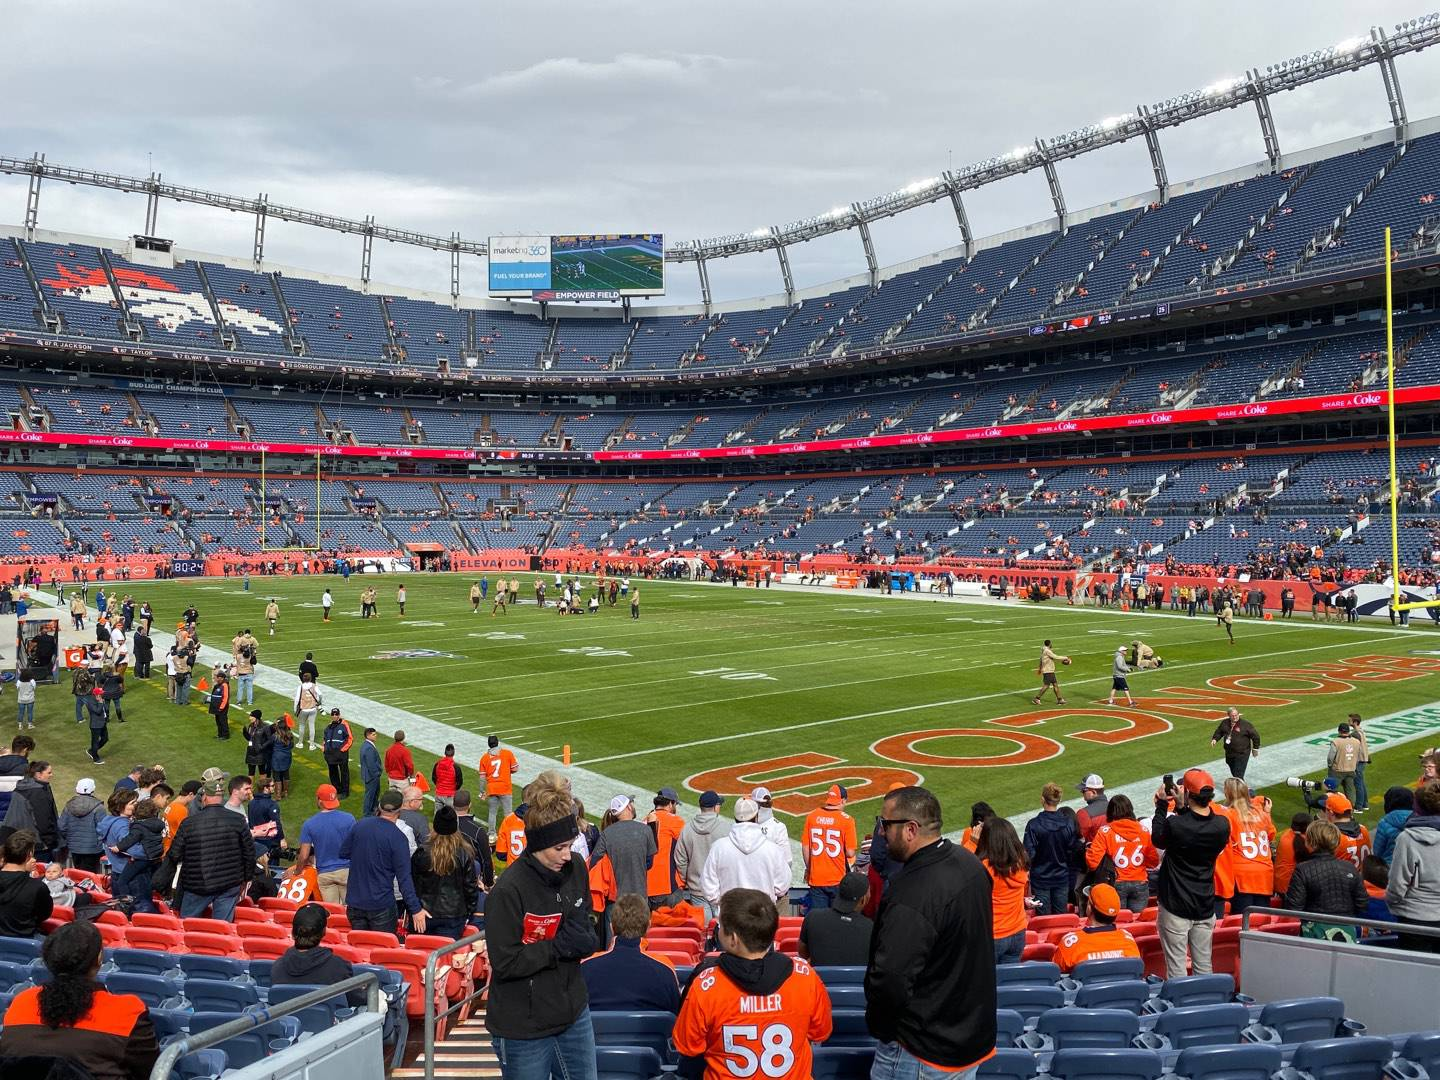 Empower Field at Mile High Stadium Section 135 Row 14 Seat 21